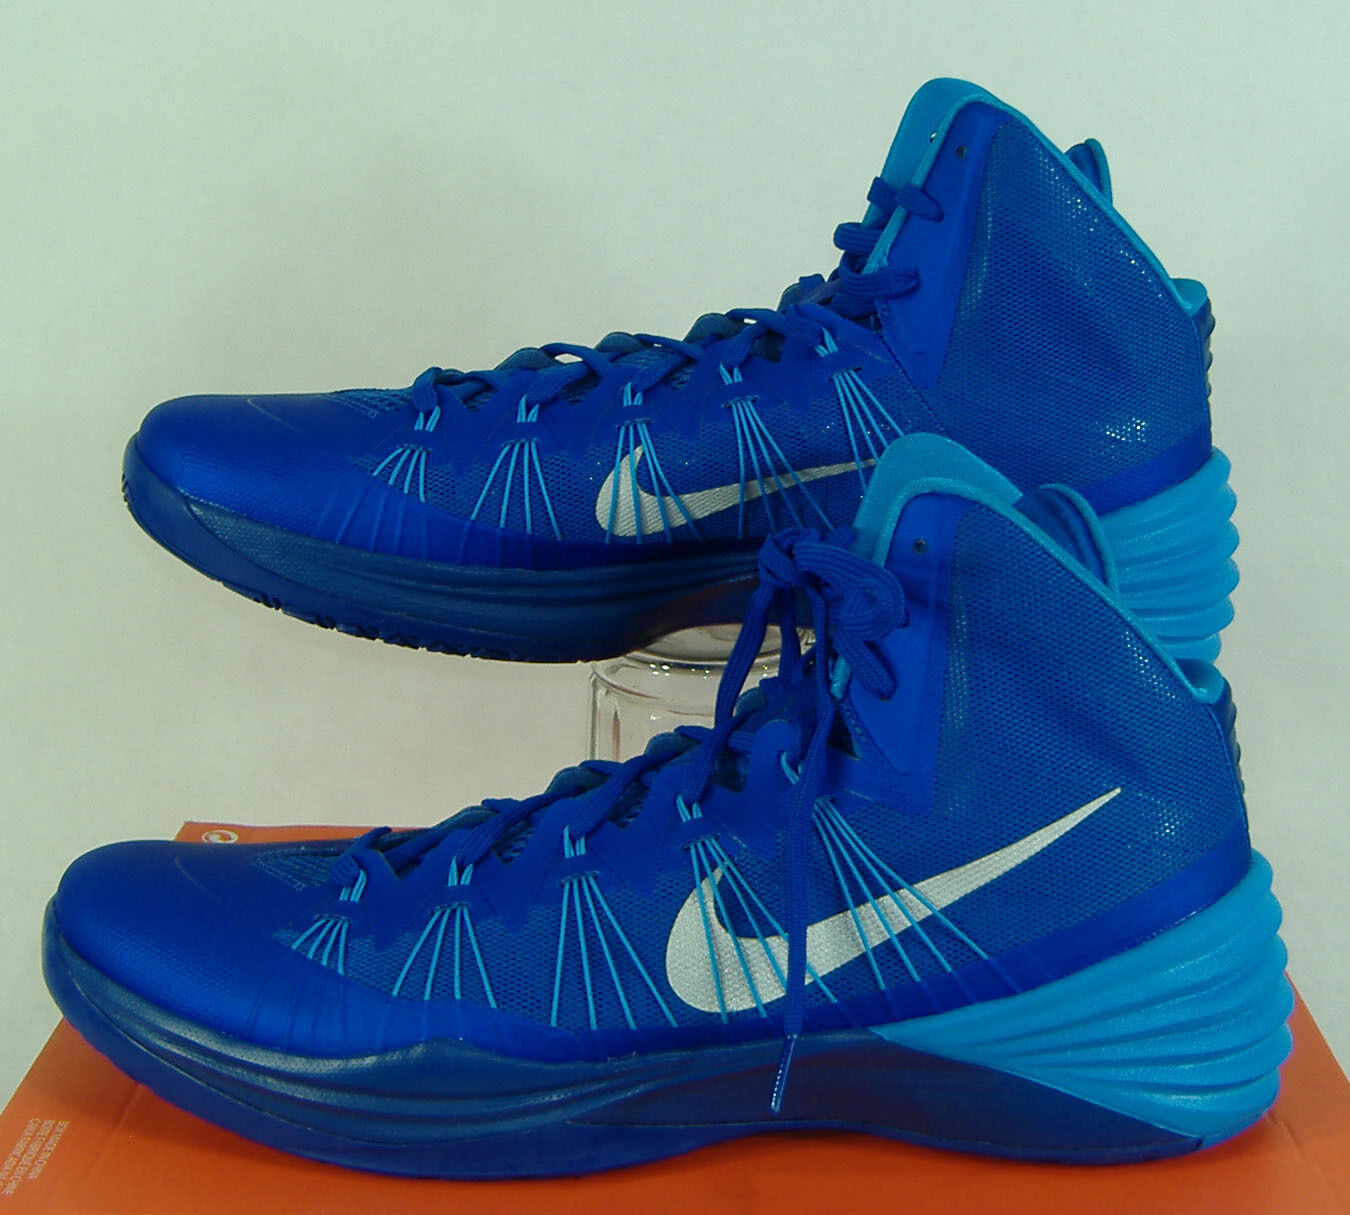 New Mens 18 NIKE Hyperdunk 2013 TB Game bluee High Top shoes  140 584433-402